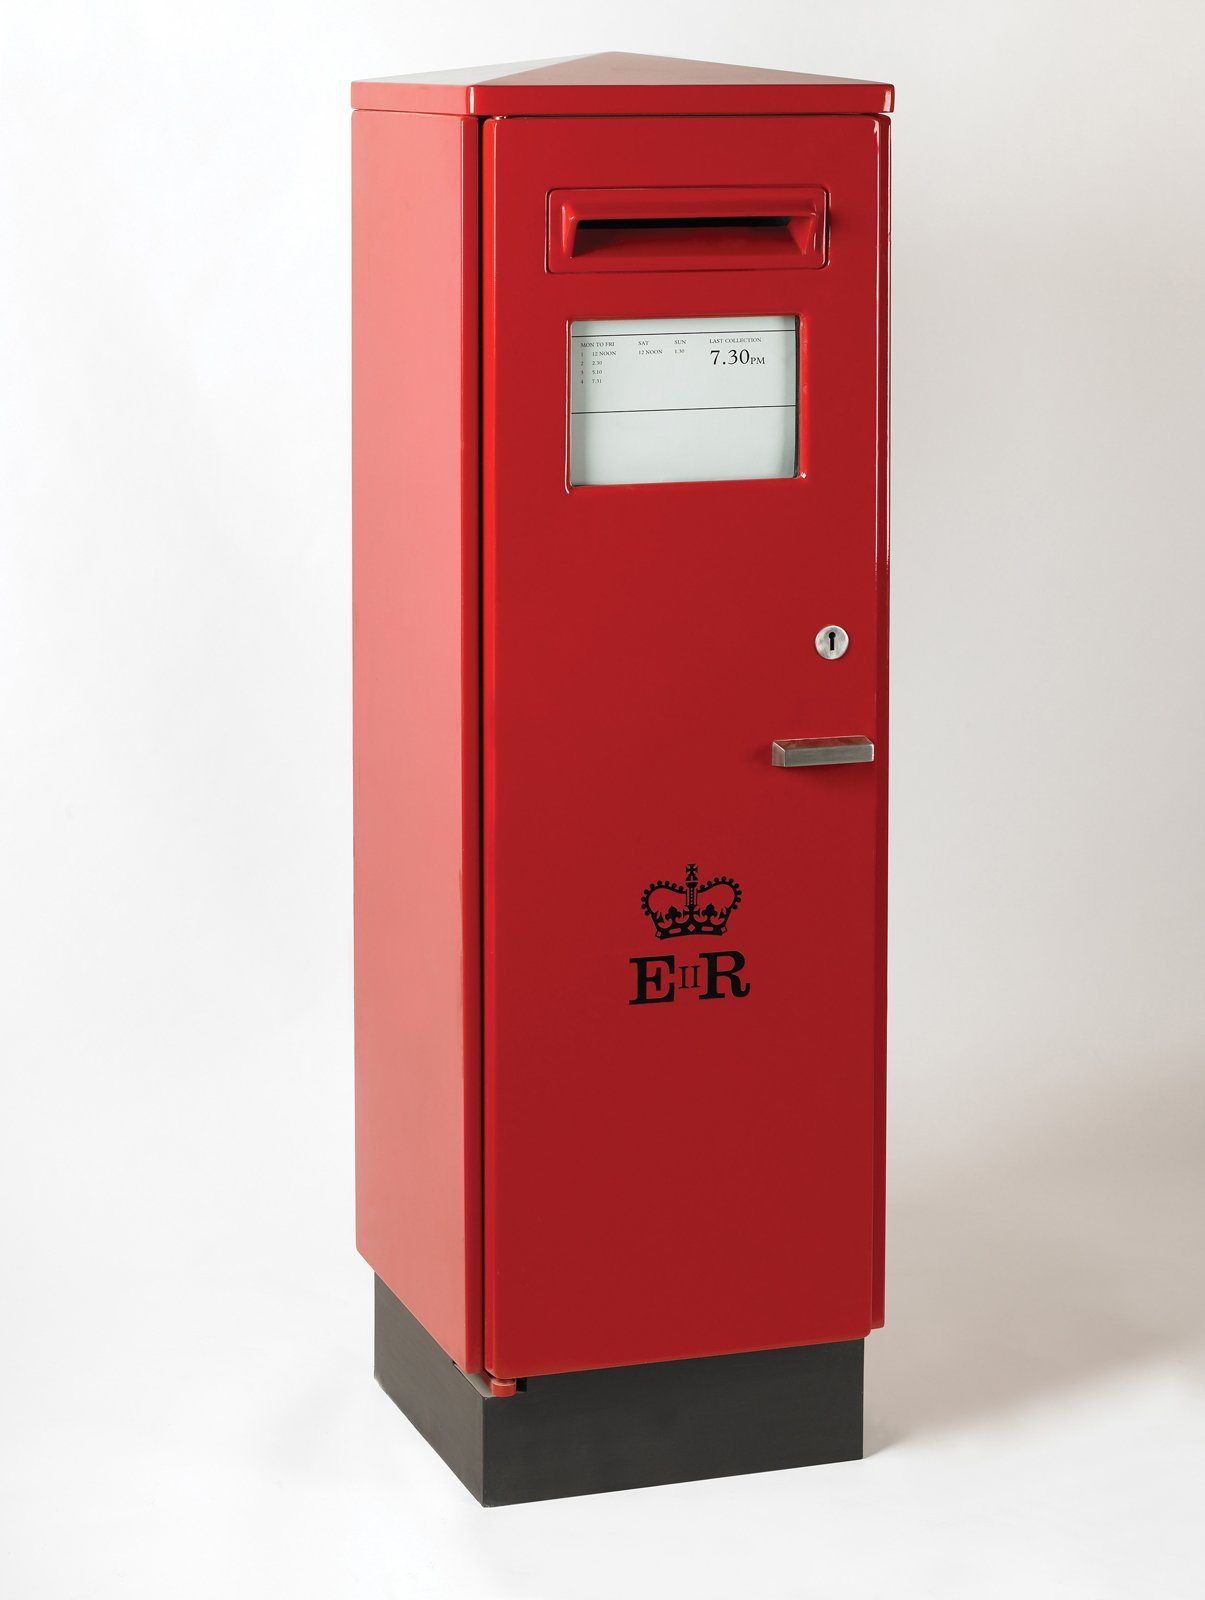 Perhaps the most interesting section of the exhibit, especially for a foreigner who readily experiences English money or mailboxes as curiosities rather than everyday items, is Identity & Design. Design Museum London's Extraordinary Stories about Ordinary Things by Rebecca L. Weber